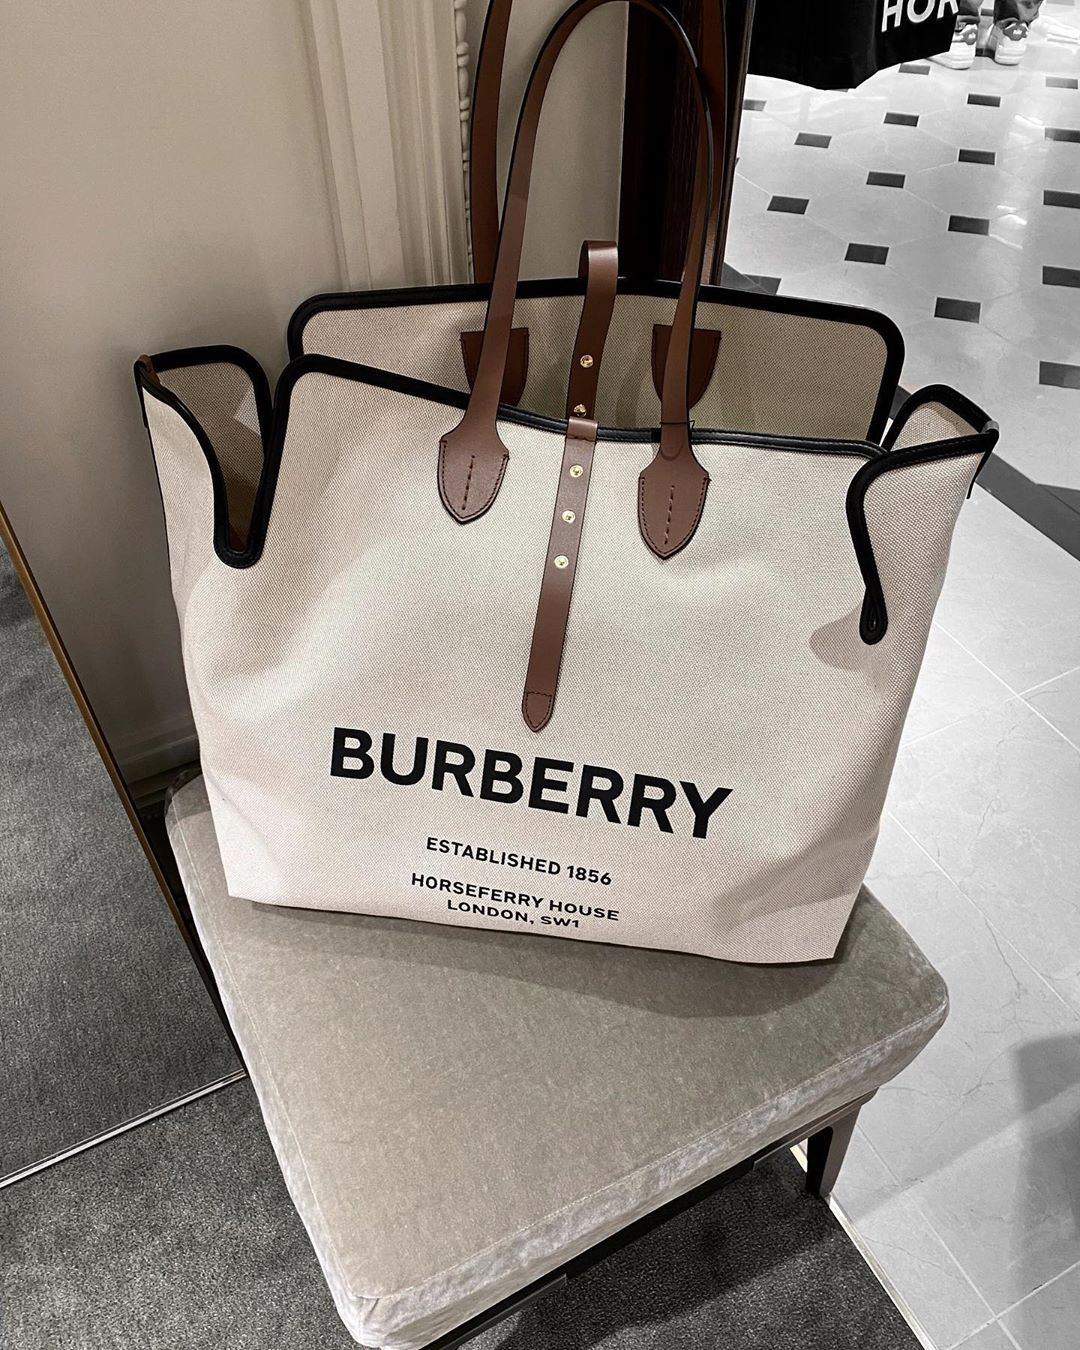 "Fashion | Beauty | Lifestyle on Instagram: ""Burberry basics ✔️"" 